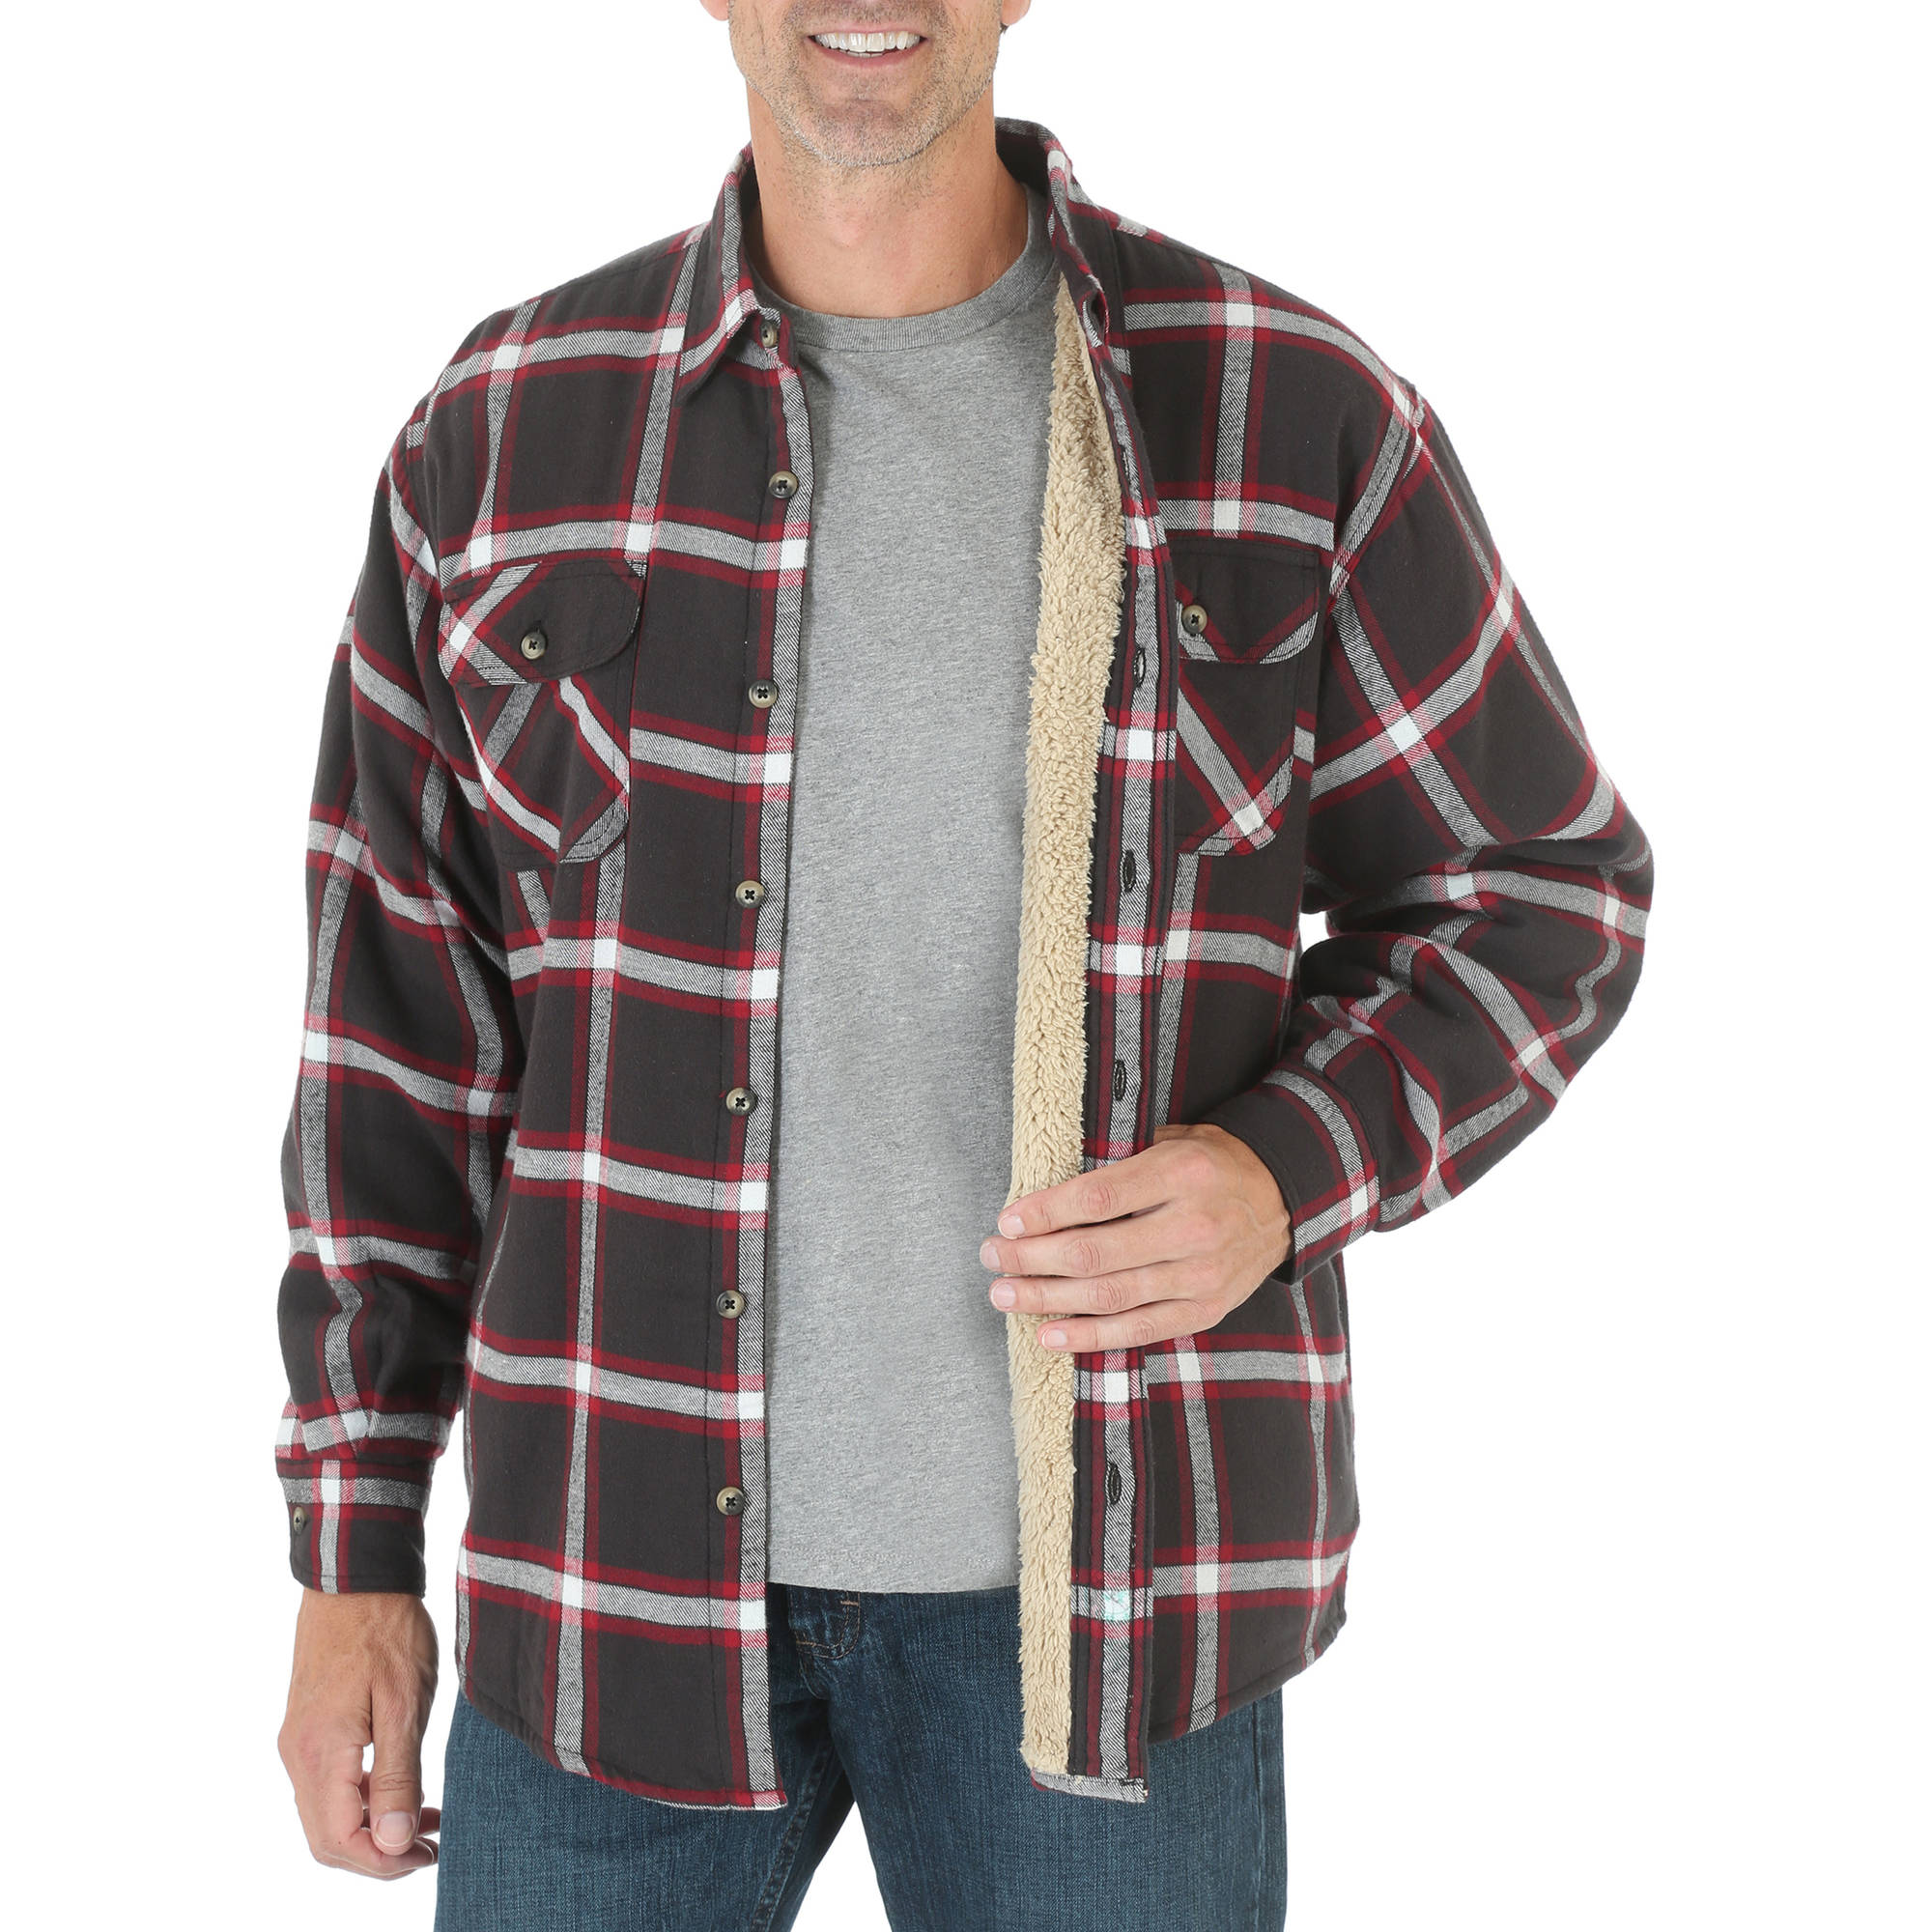 Wrangler Men's Heavyweight Woven Shirt